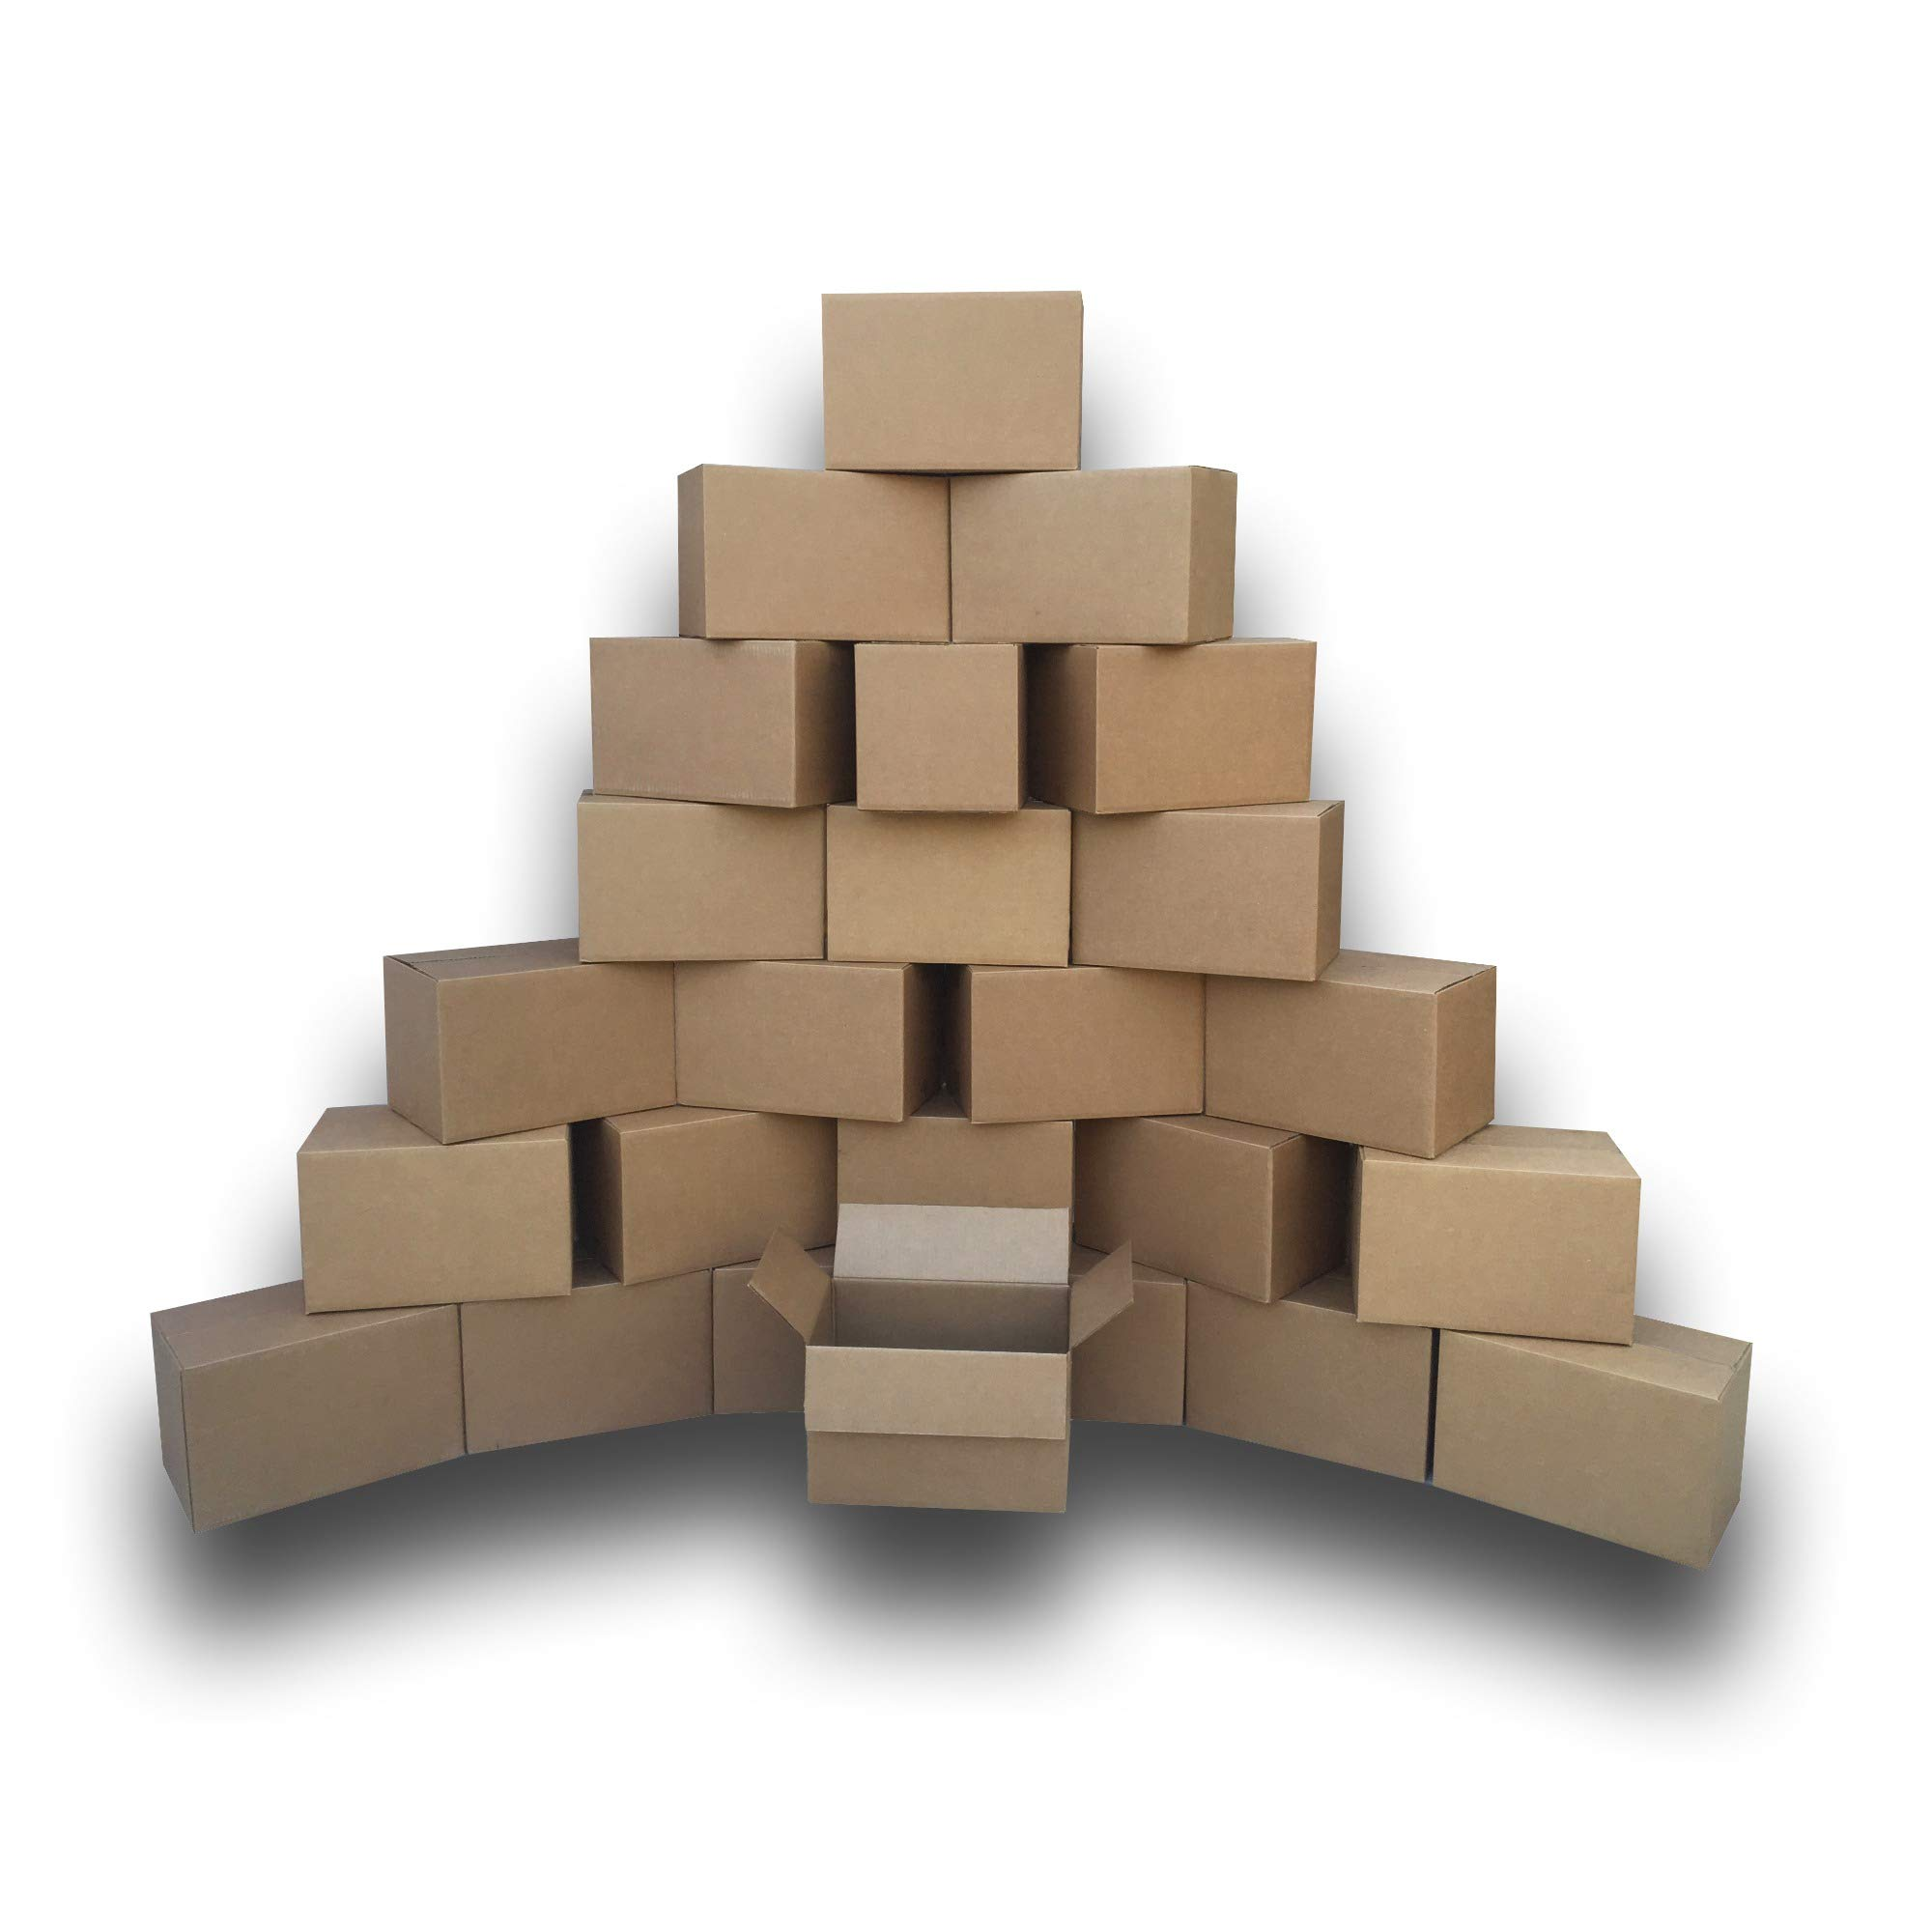 Uboxes BOXBUNDSMA25 Small Moving Boxes, 16'' x 10'' x 10'' Packing Cardboard Box (Pack of 25) by Uboxes